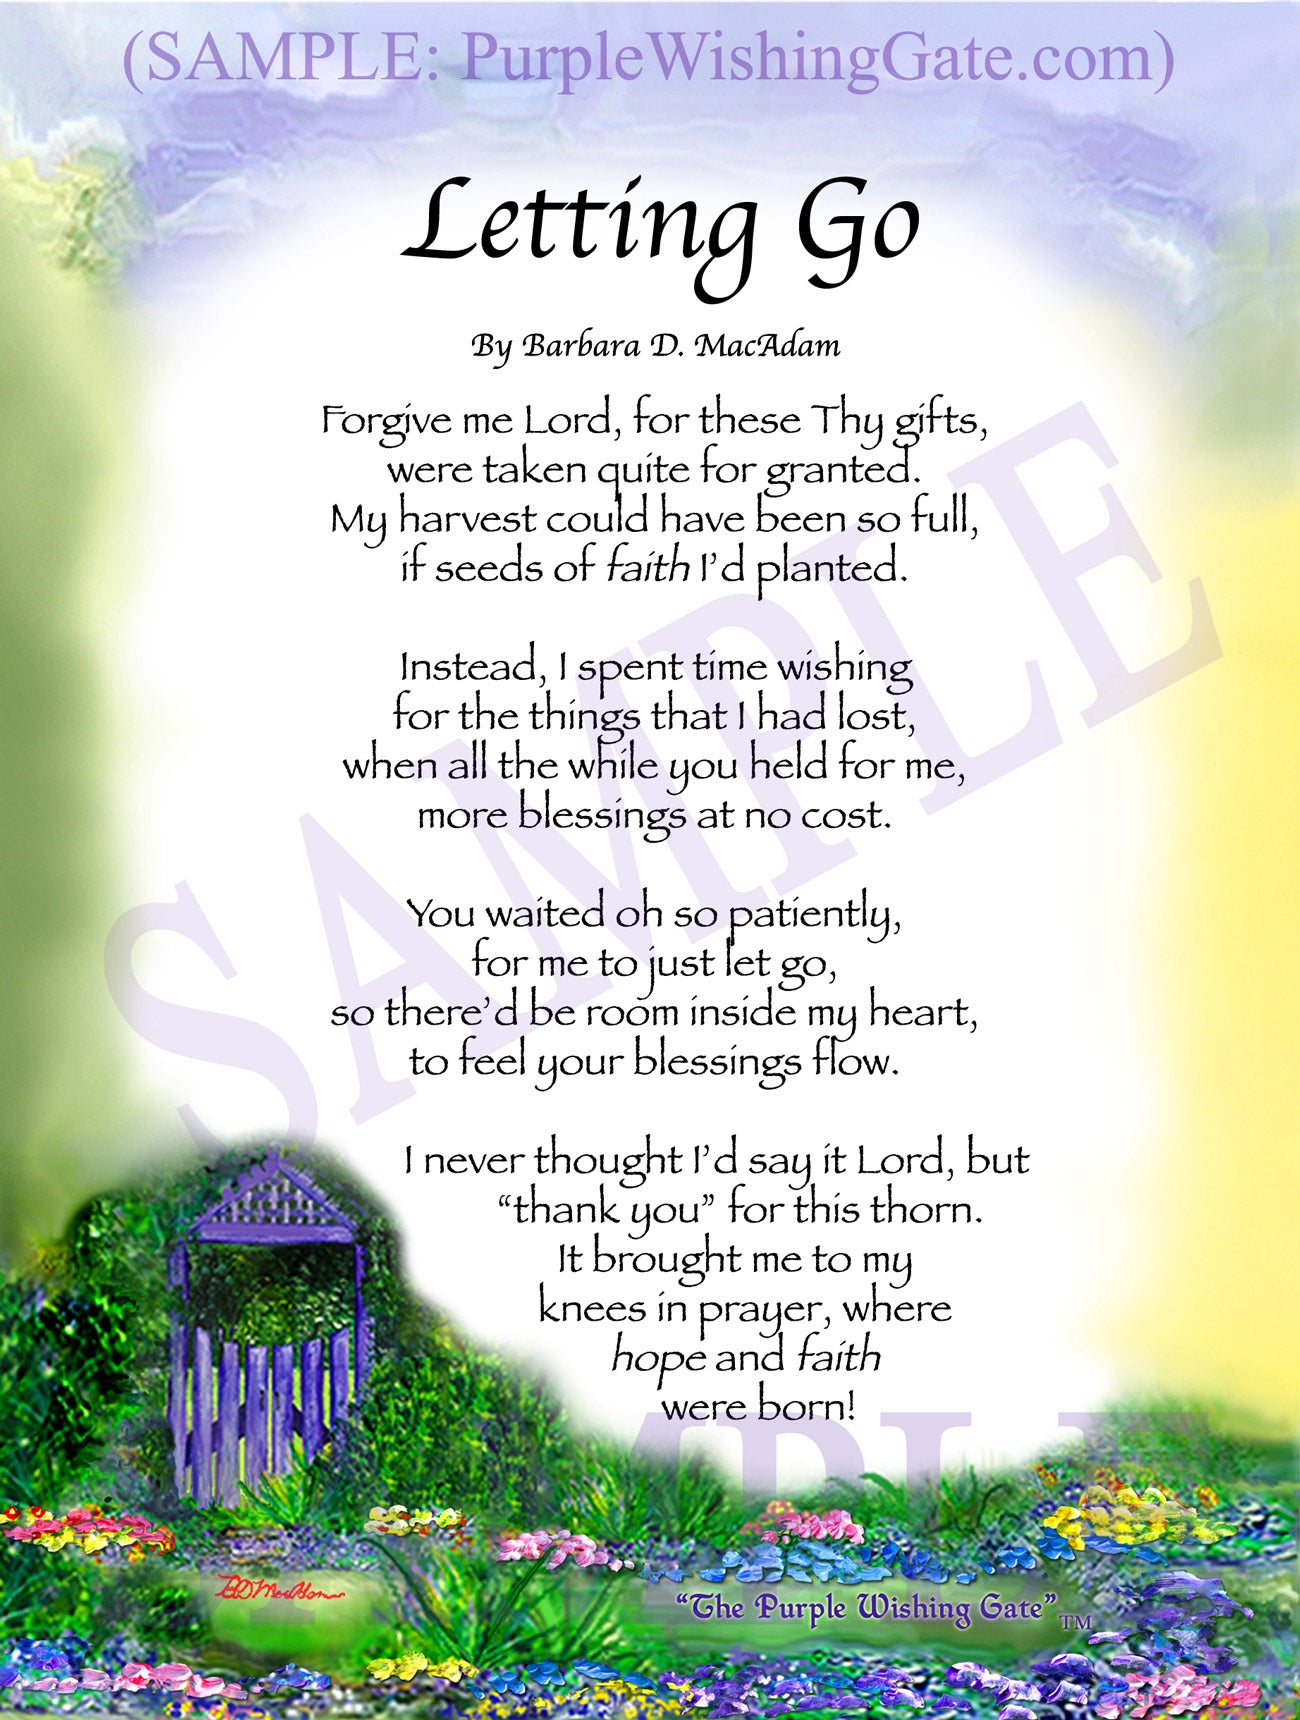 Letting Go - Encouragement Gift - PurpleWishingGate.com